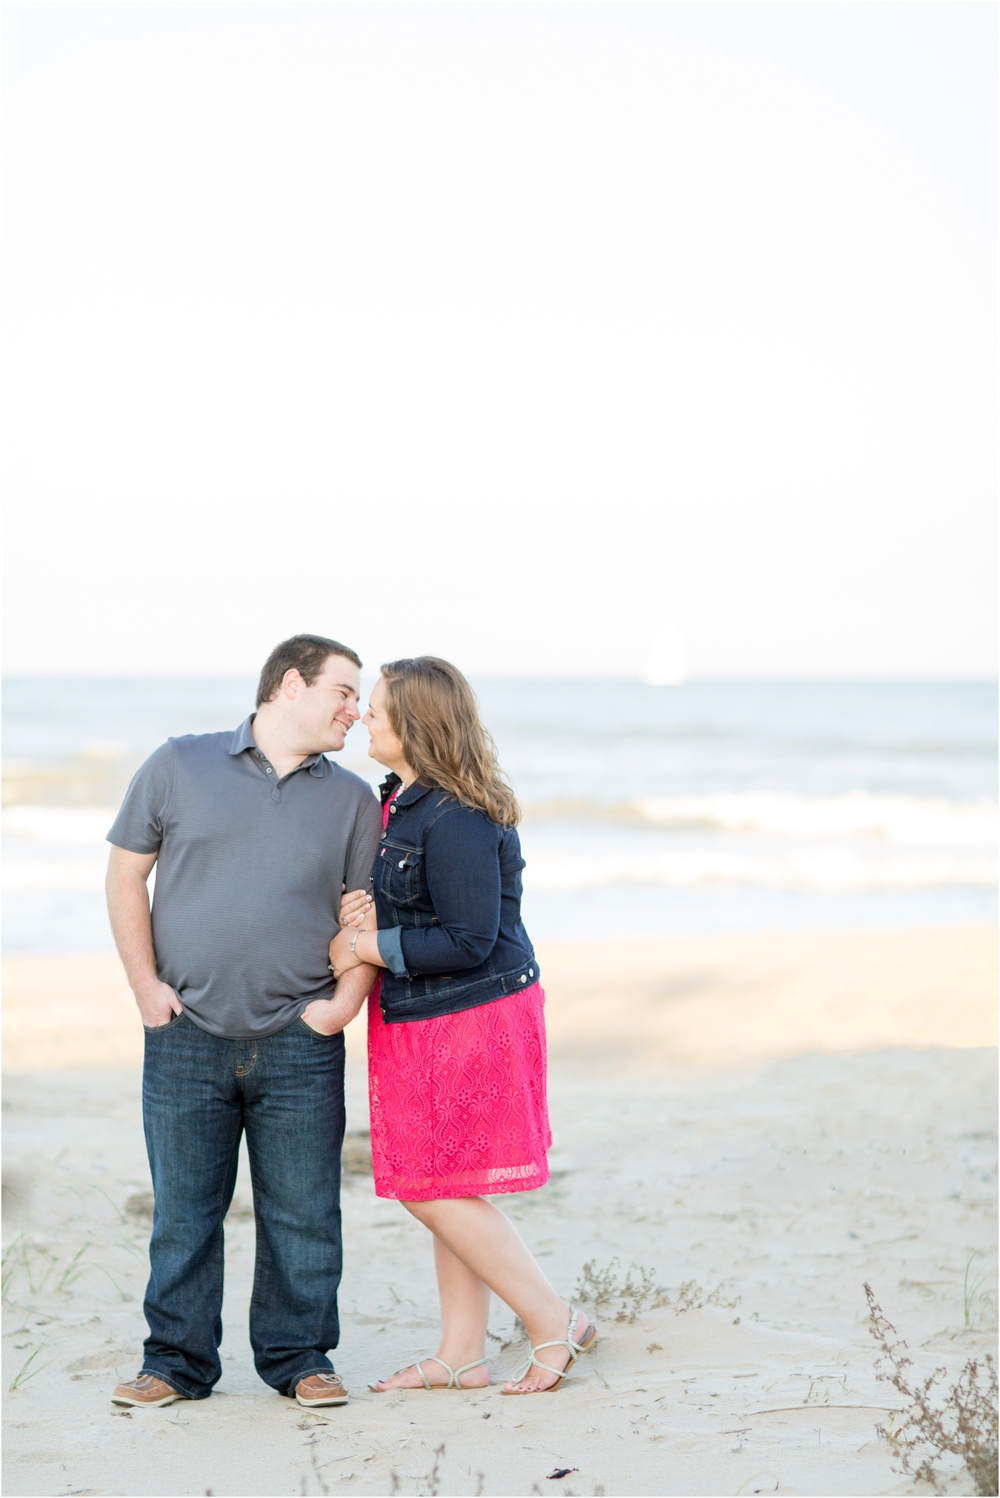 Molly-Ross-Engagement-76.jpg